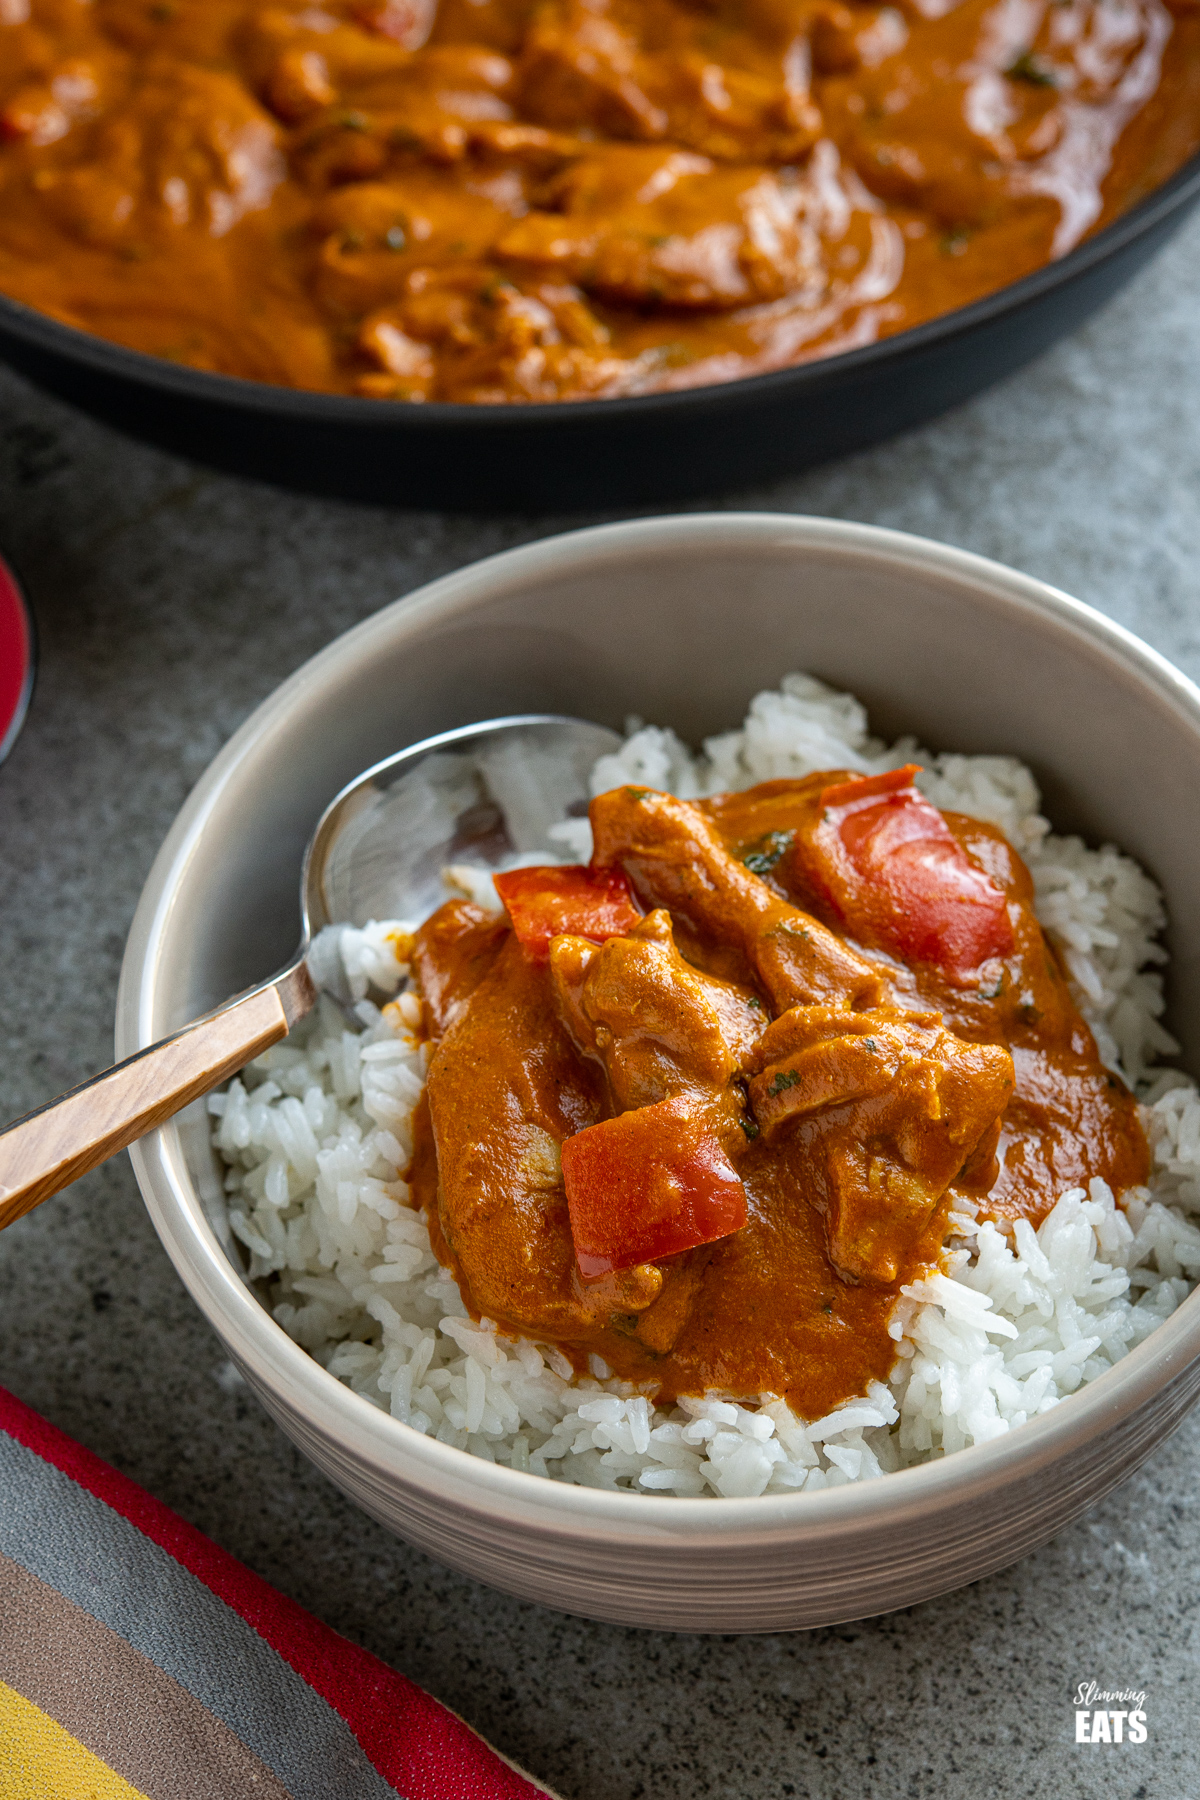 chicken curry in a grey bowl with white rice and a wooden handled spoon placed in the left hand side of the bowl